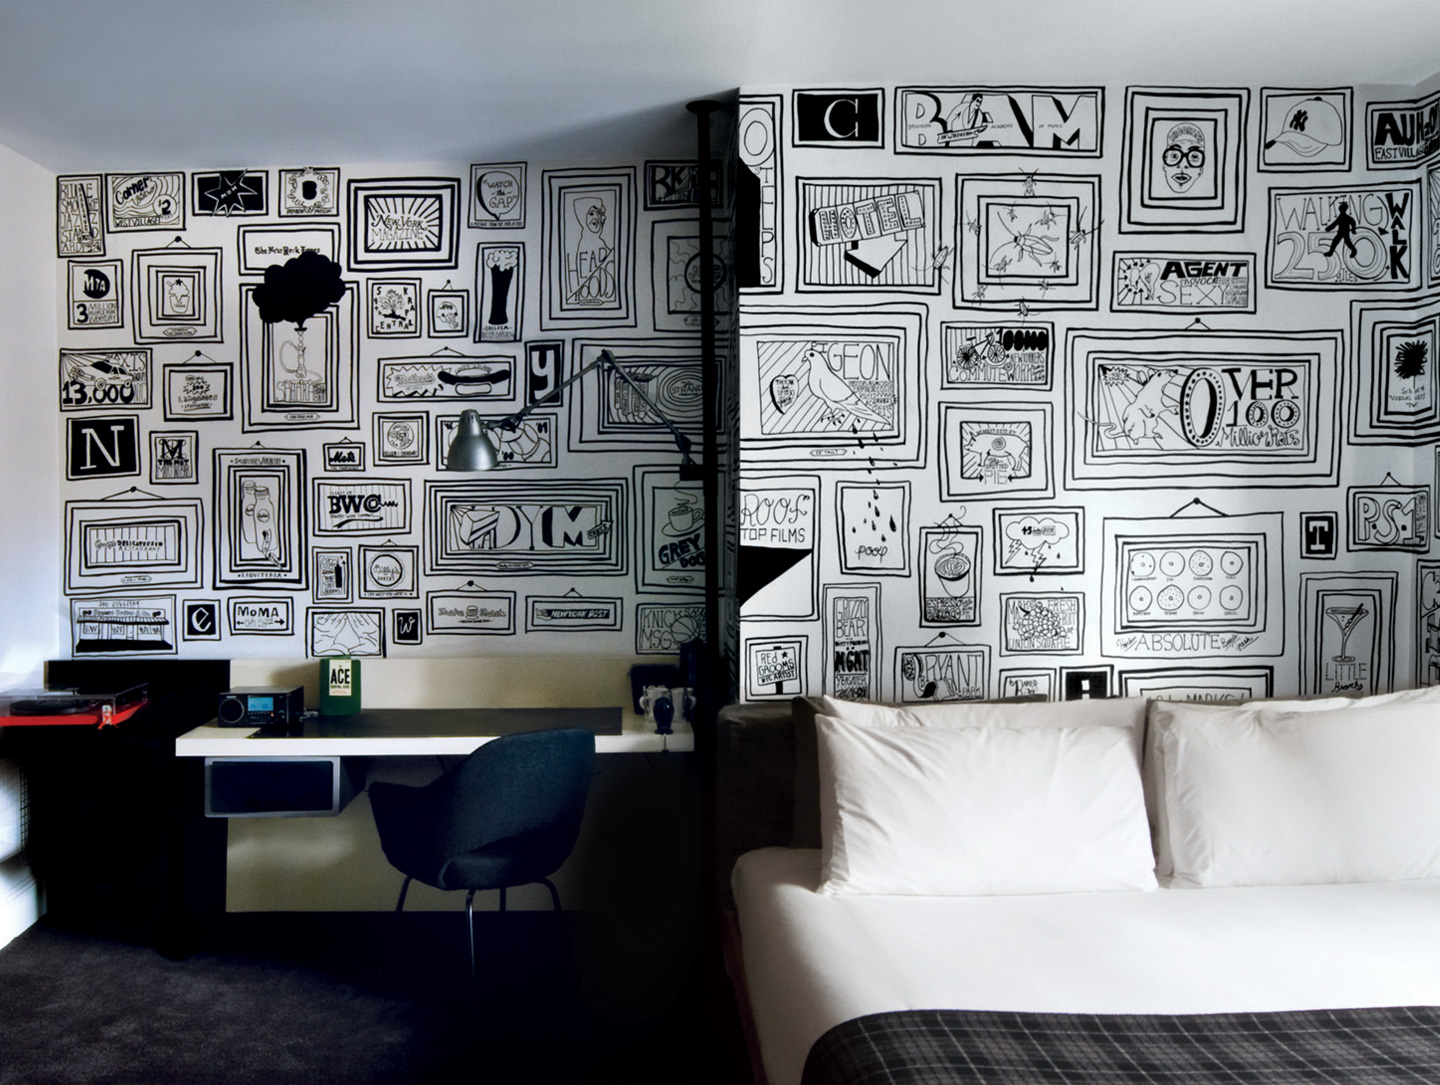 Inspired by a simple black sharpie for Ace hotel decor